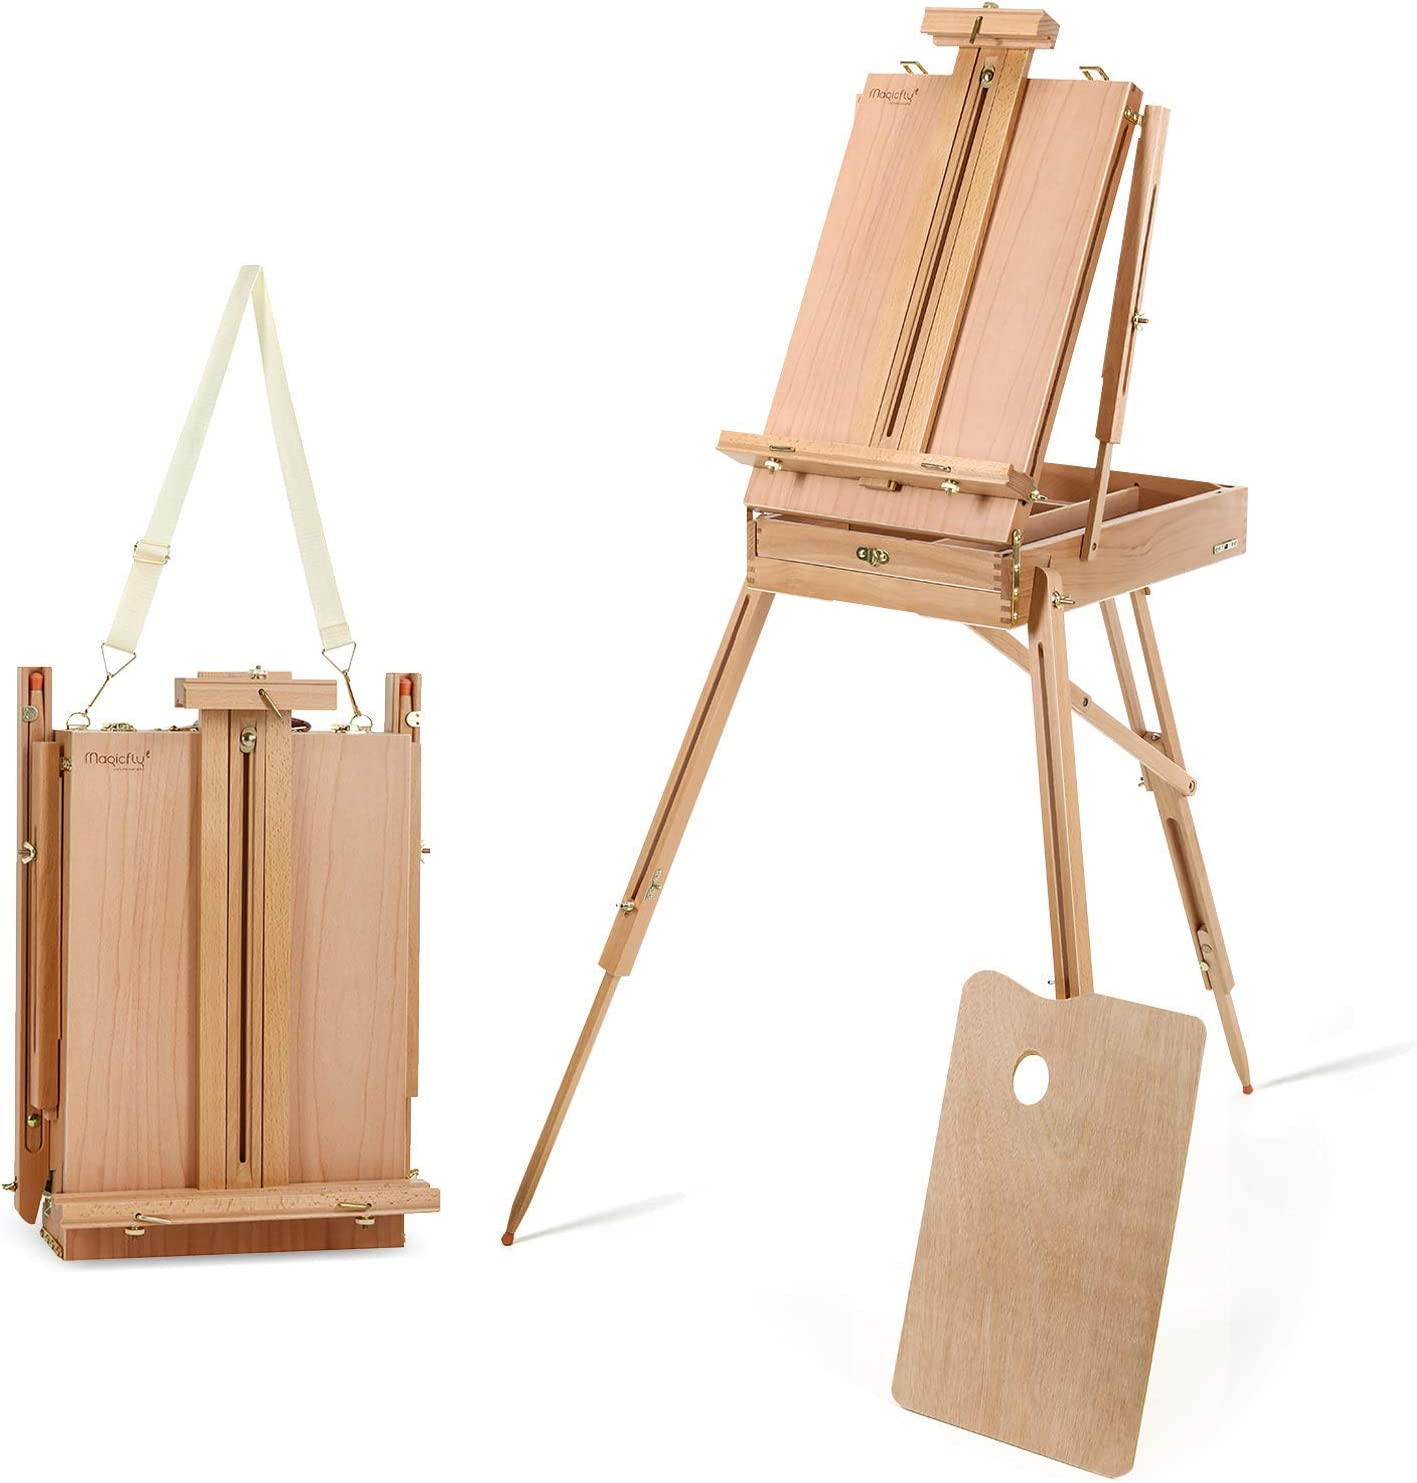 Delta Prime Savings Club - Portable Art Easel with Storage Sketch Box, French Style Adjustable Painting Easel with Wooden Pallete & Shoulder Strap for Painting and Drawing